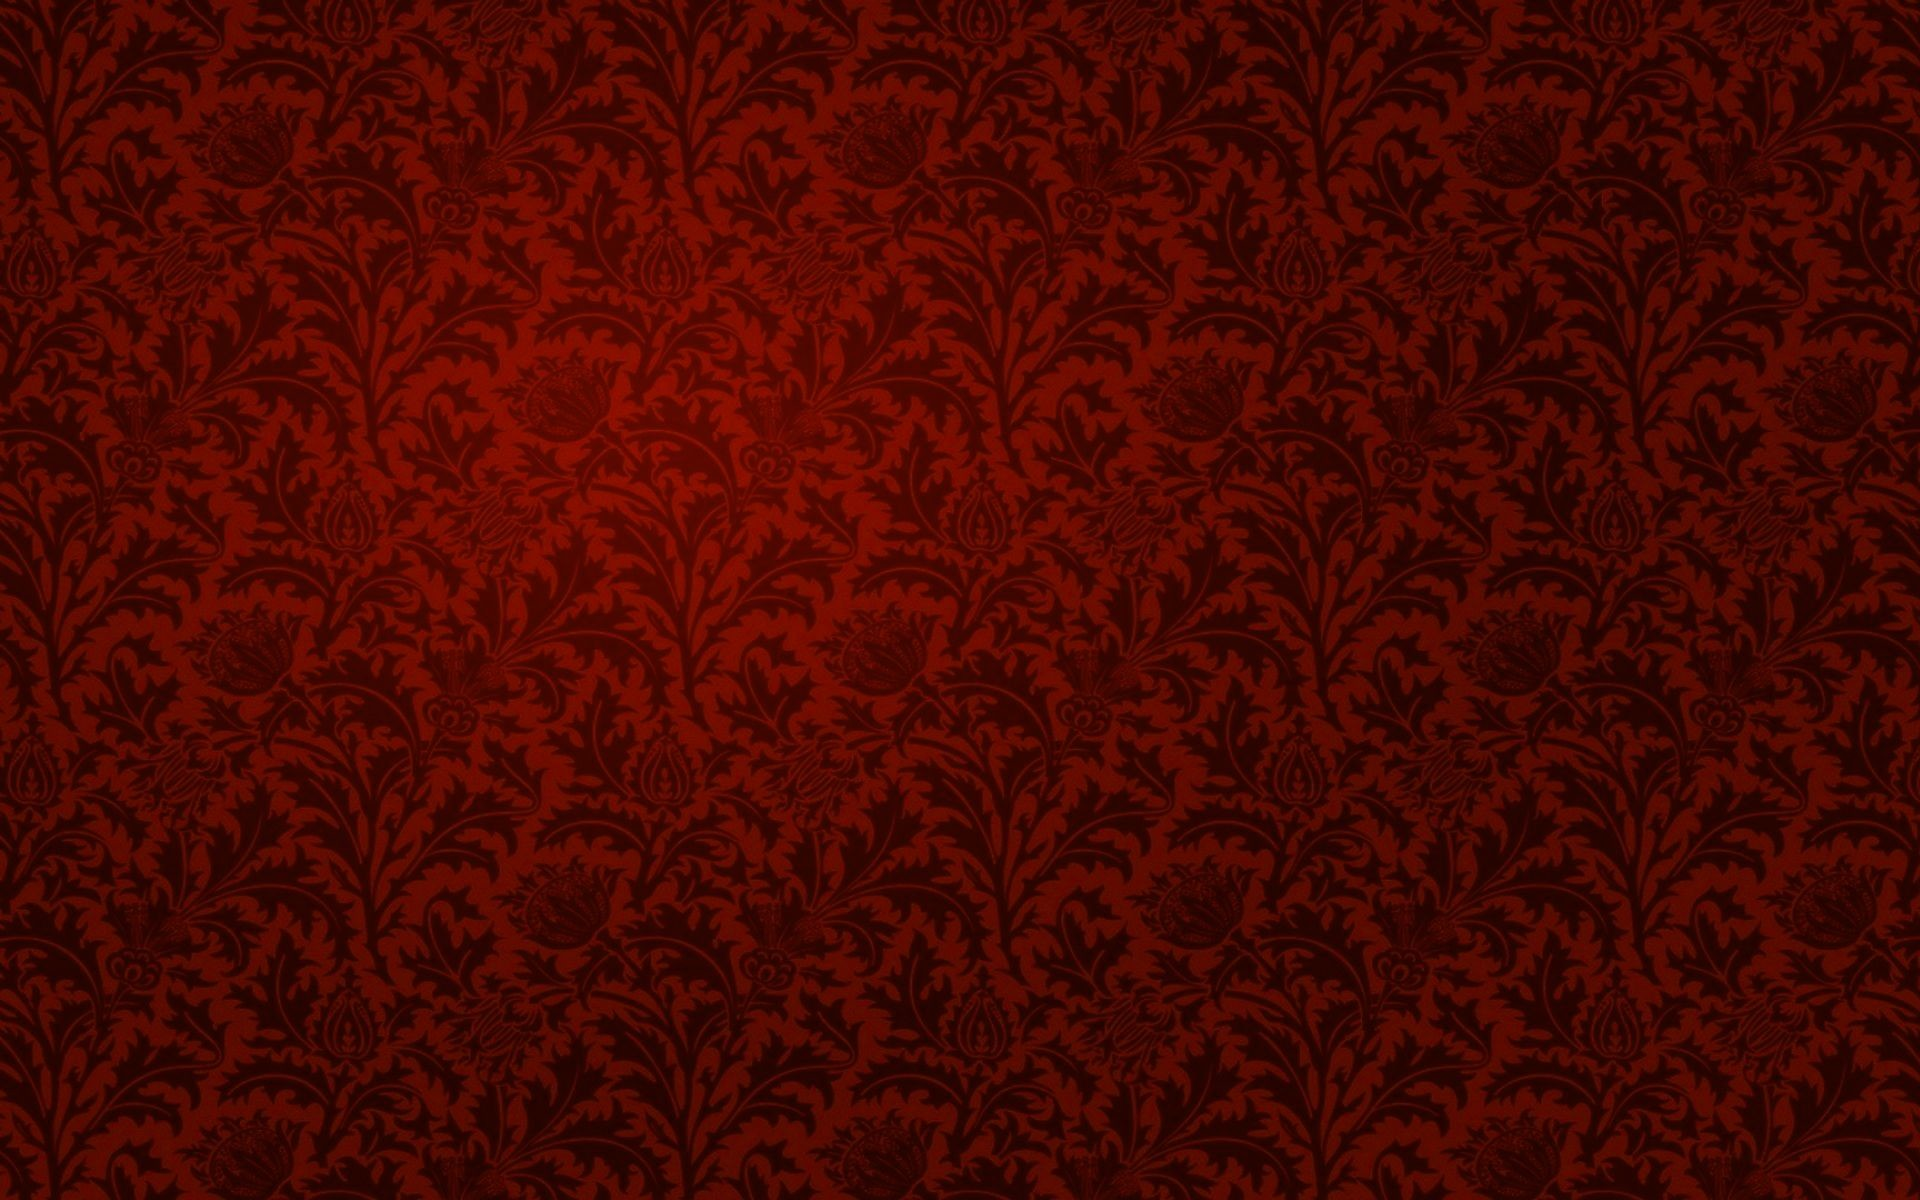 Red Flocked on Gold Vintage WallpaperIMG_8511 – – 523 of 585 (1 of .